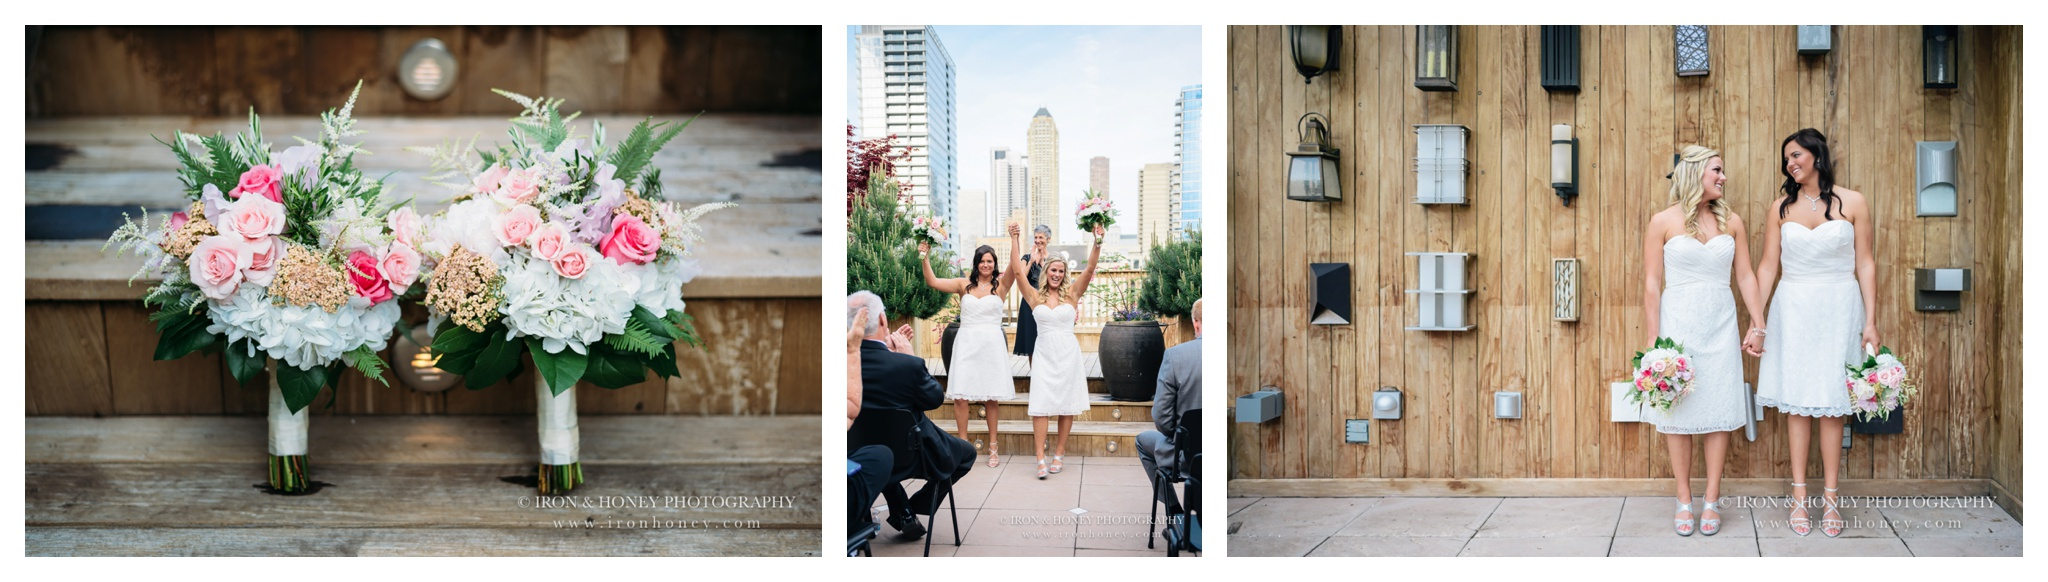 iron and honey photography, lightology, chicago, rooftop, wedding, photographer, elopement, destination, lightology wedding chicago, lightology, small, ceremony, civil, intimate,